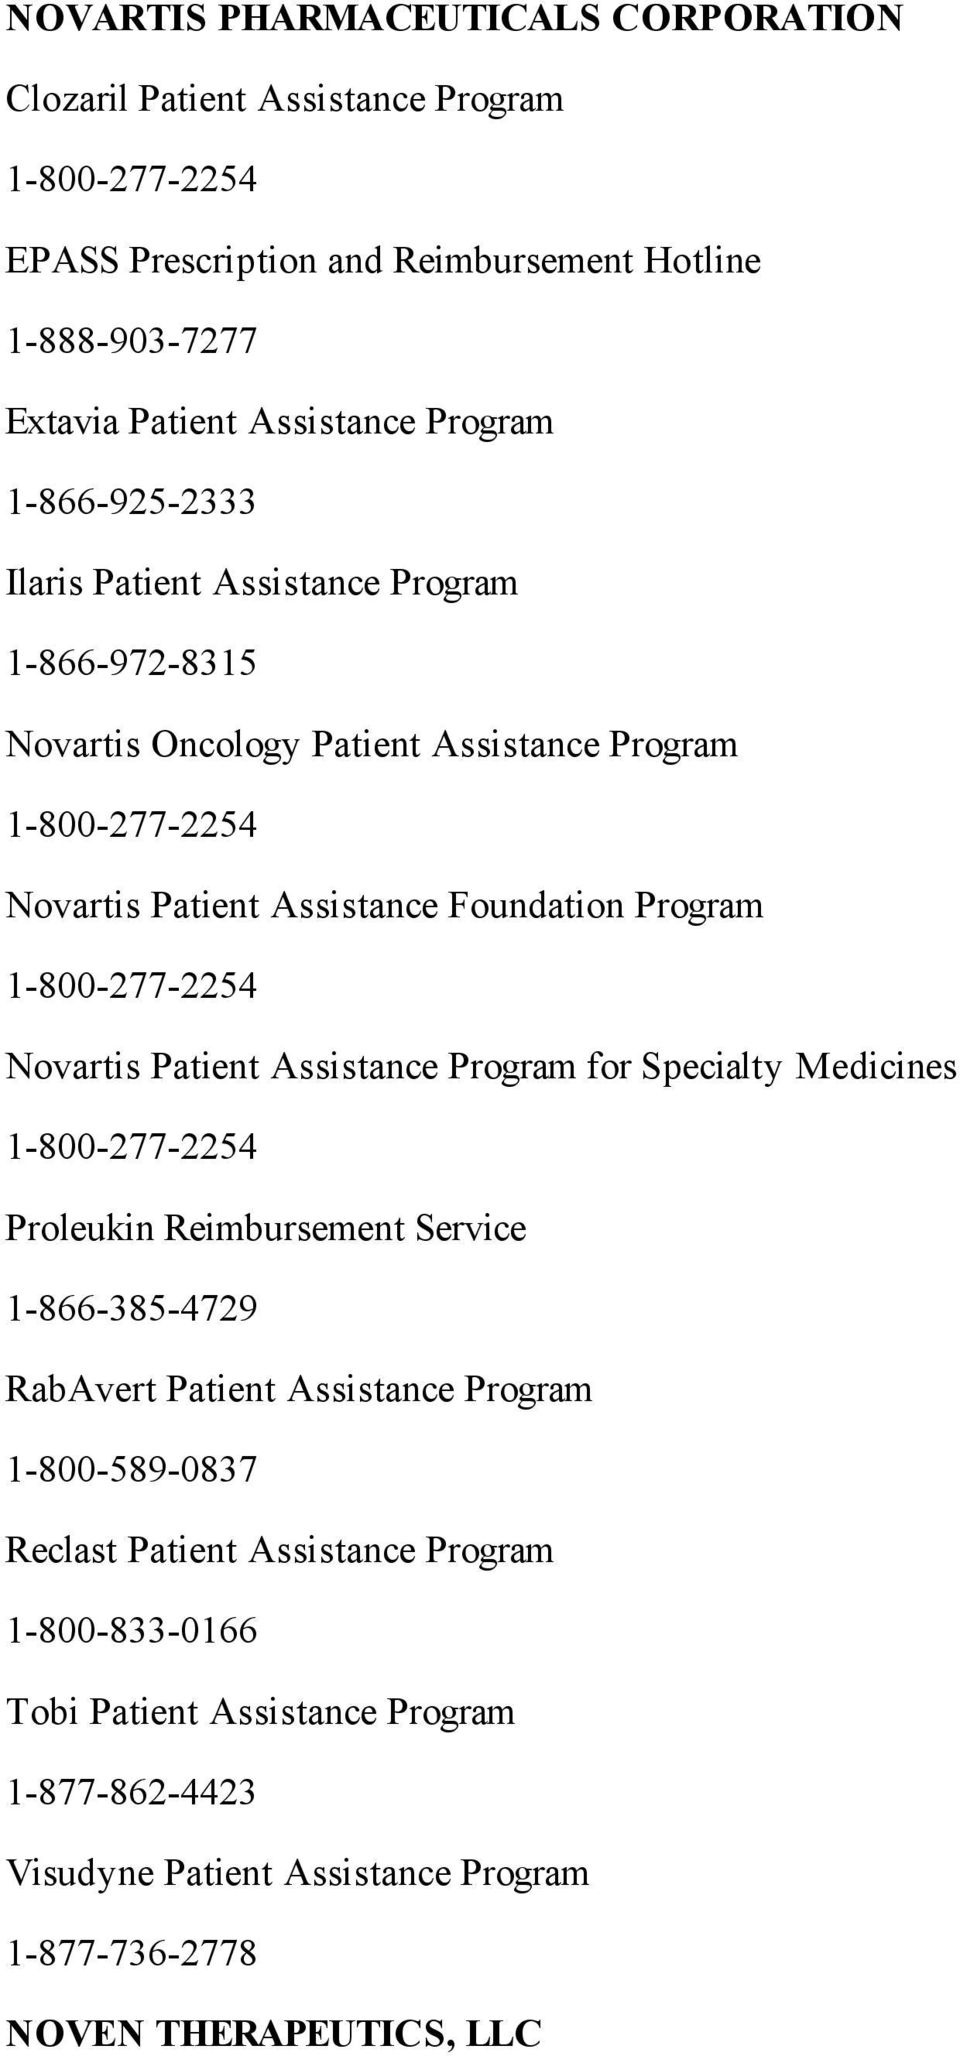 1-800-277-2254 Novartis Patient Assistance Program for Specialty Medicines 1-800-277-2254 Proleukin Reimbursement Service 1-866-385-4729 RabAvert Patient Assistance Program